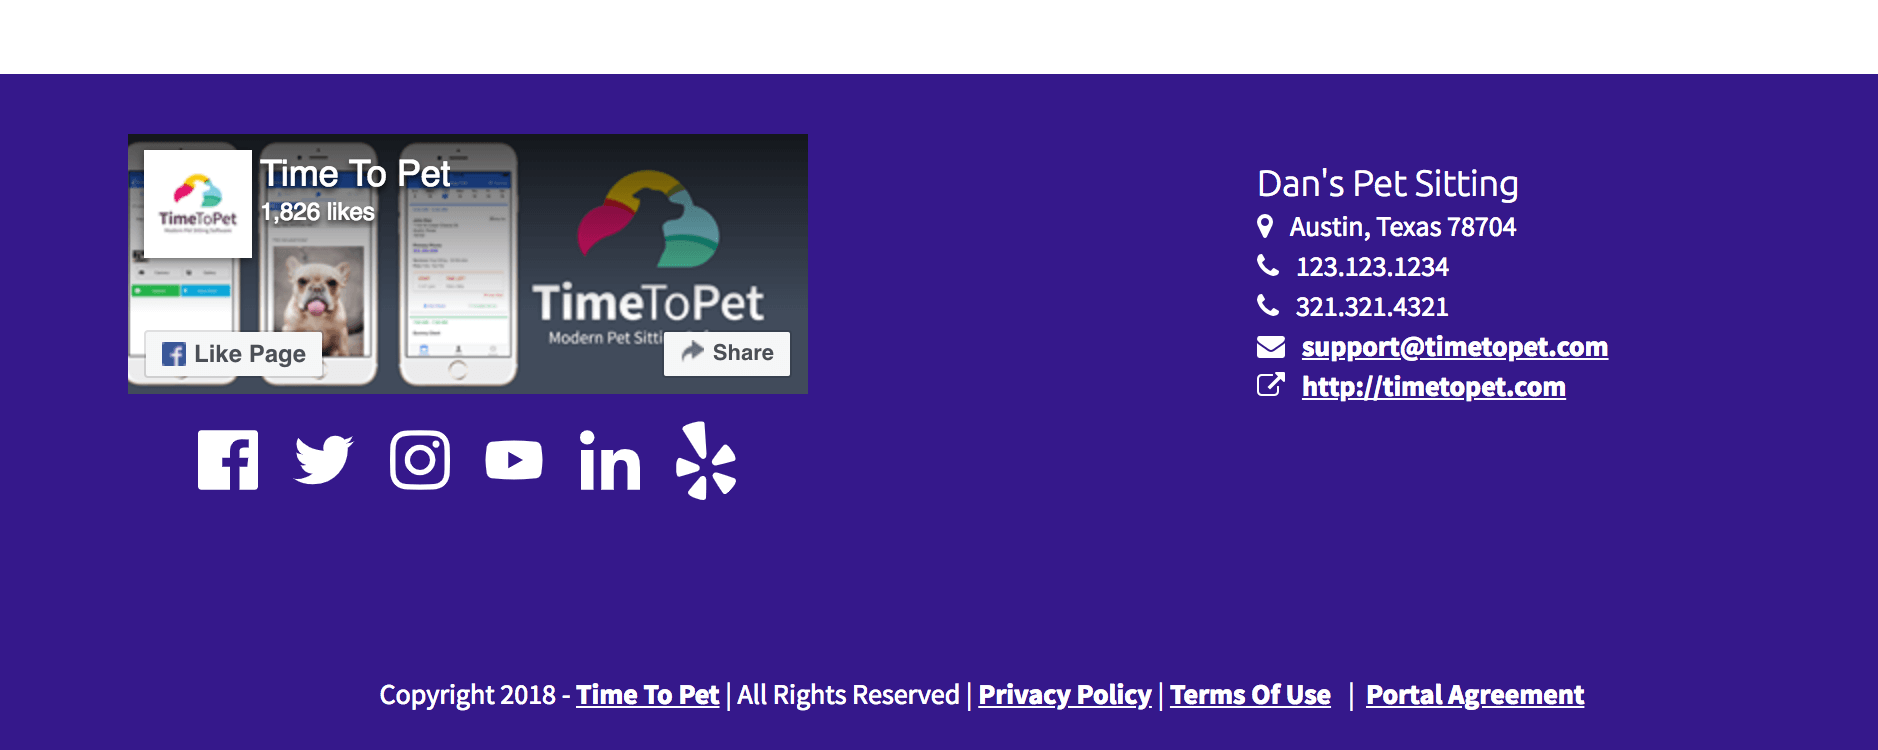 Pet Sitting Social Media Icons in Portal Footer